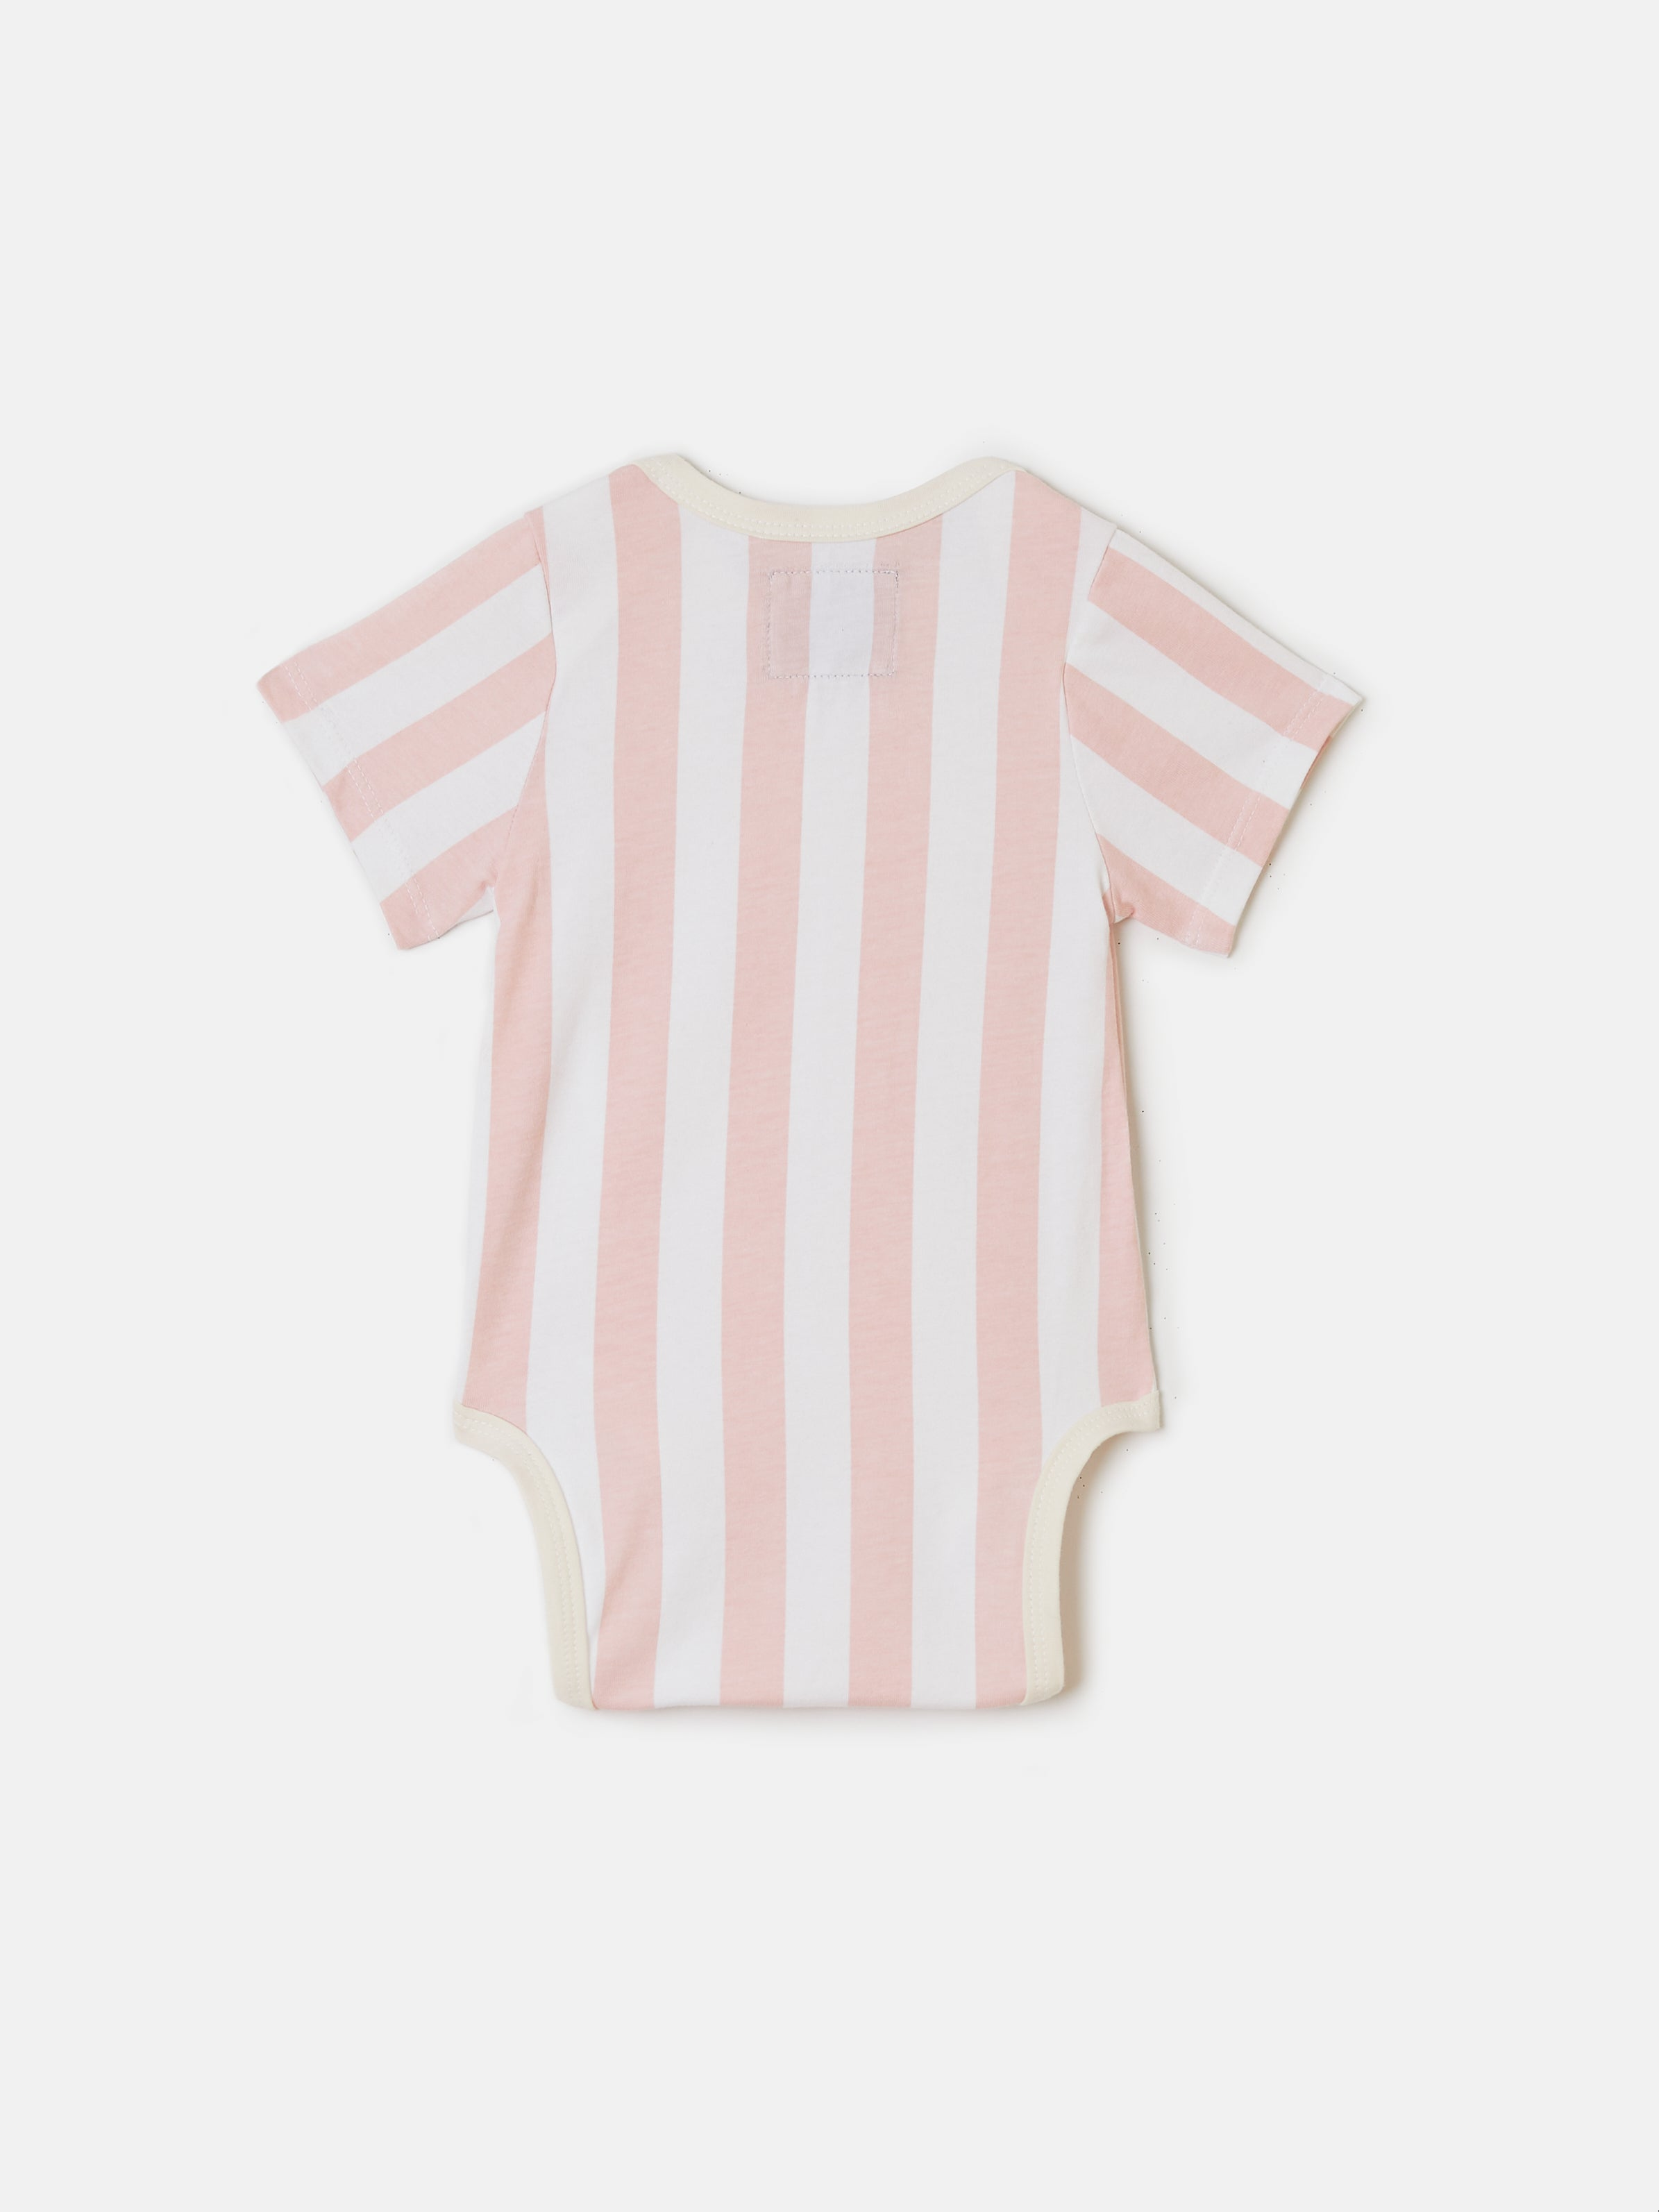 Onesie - Pink Candy Stripes